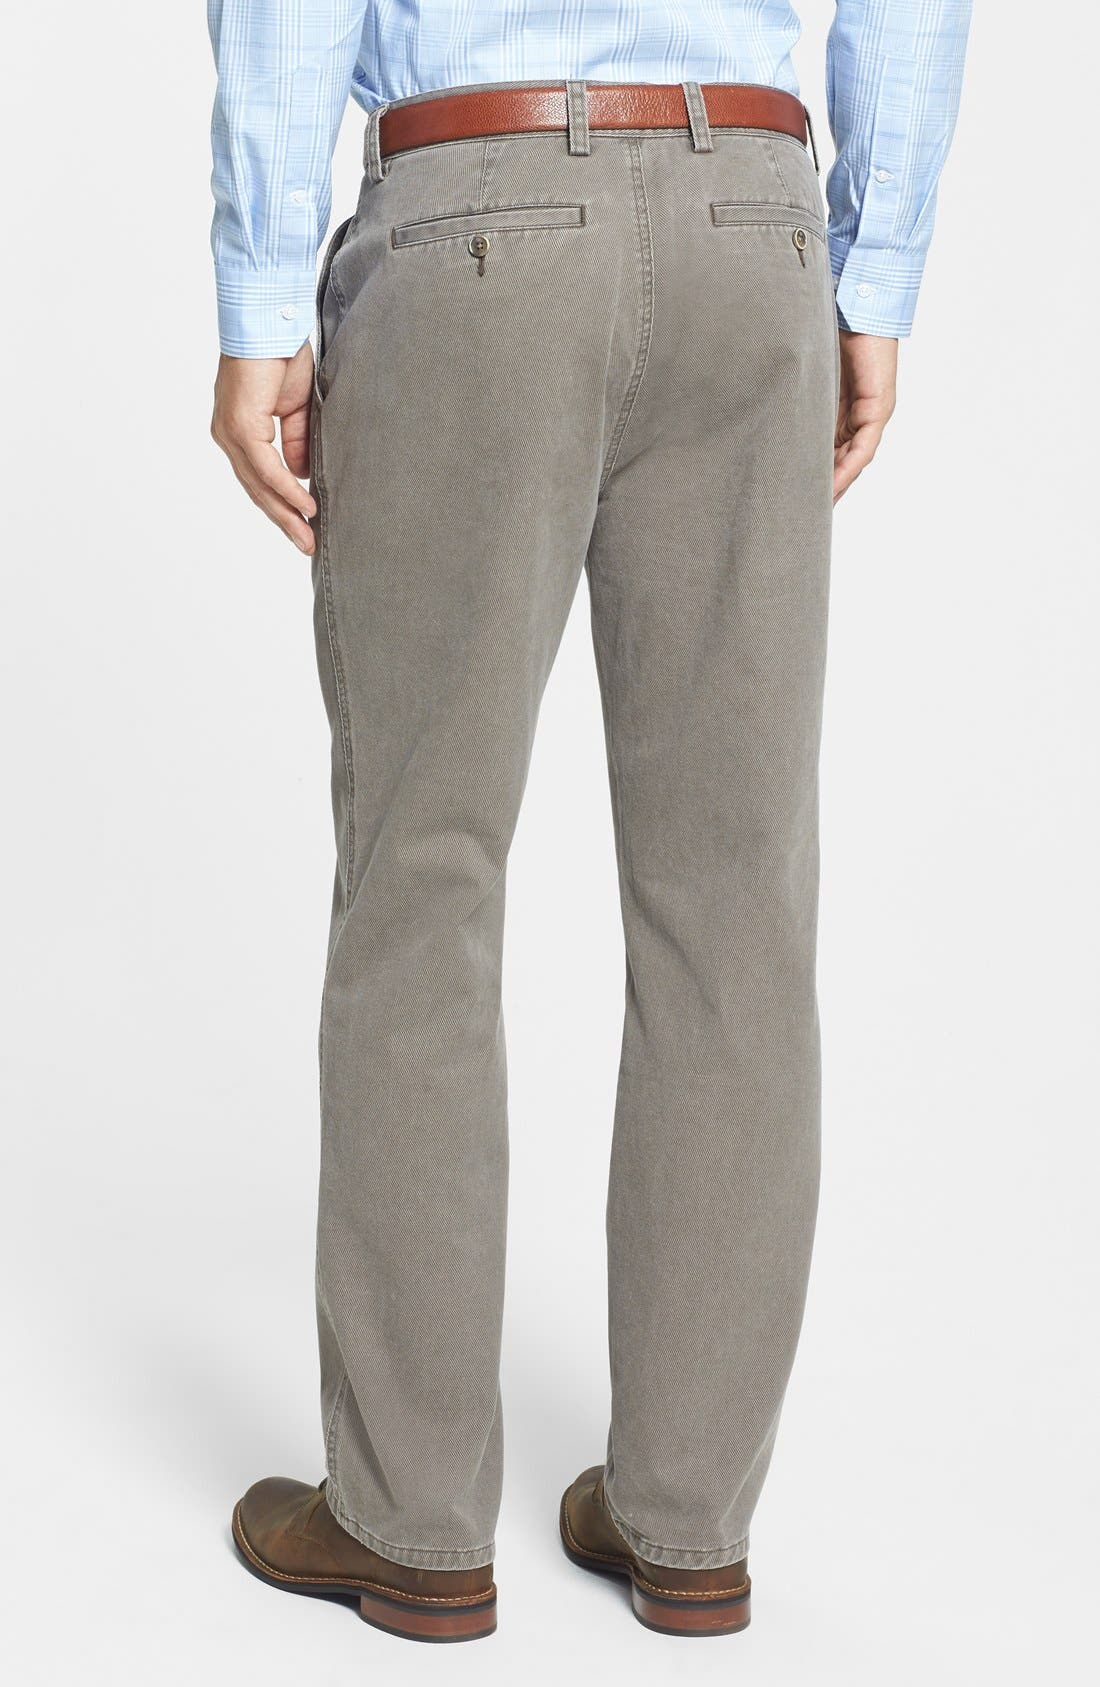 Curtis Flat Front Five-Pocket Cotton Twill Pants,                             Alternate thumbnail 6, color,                             218